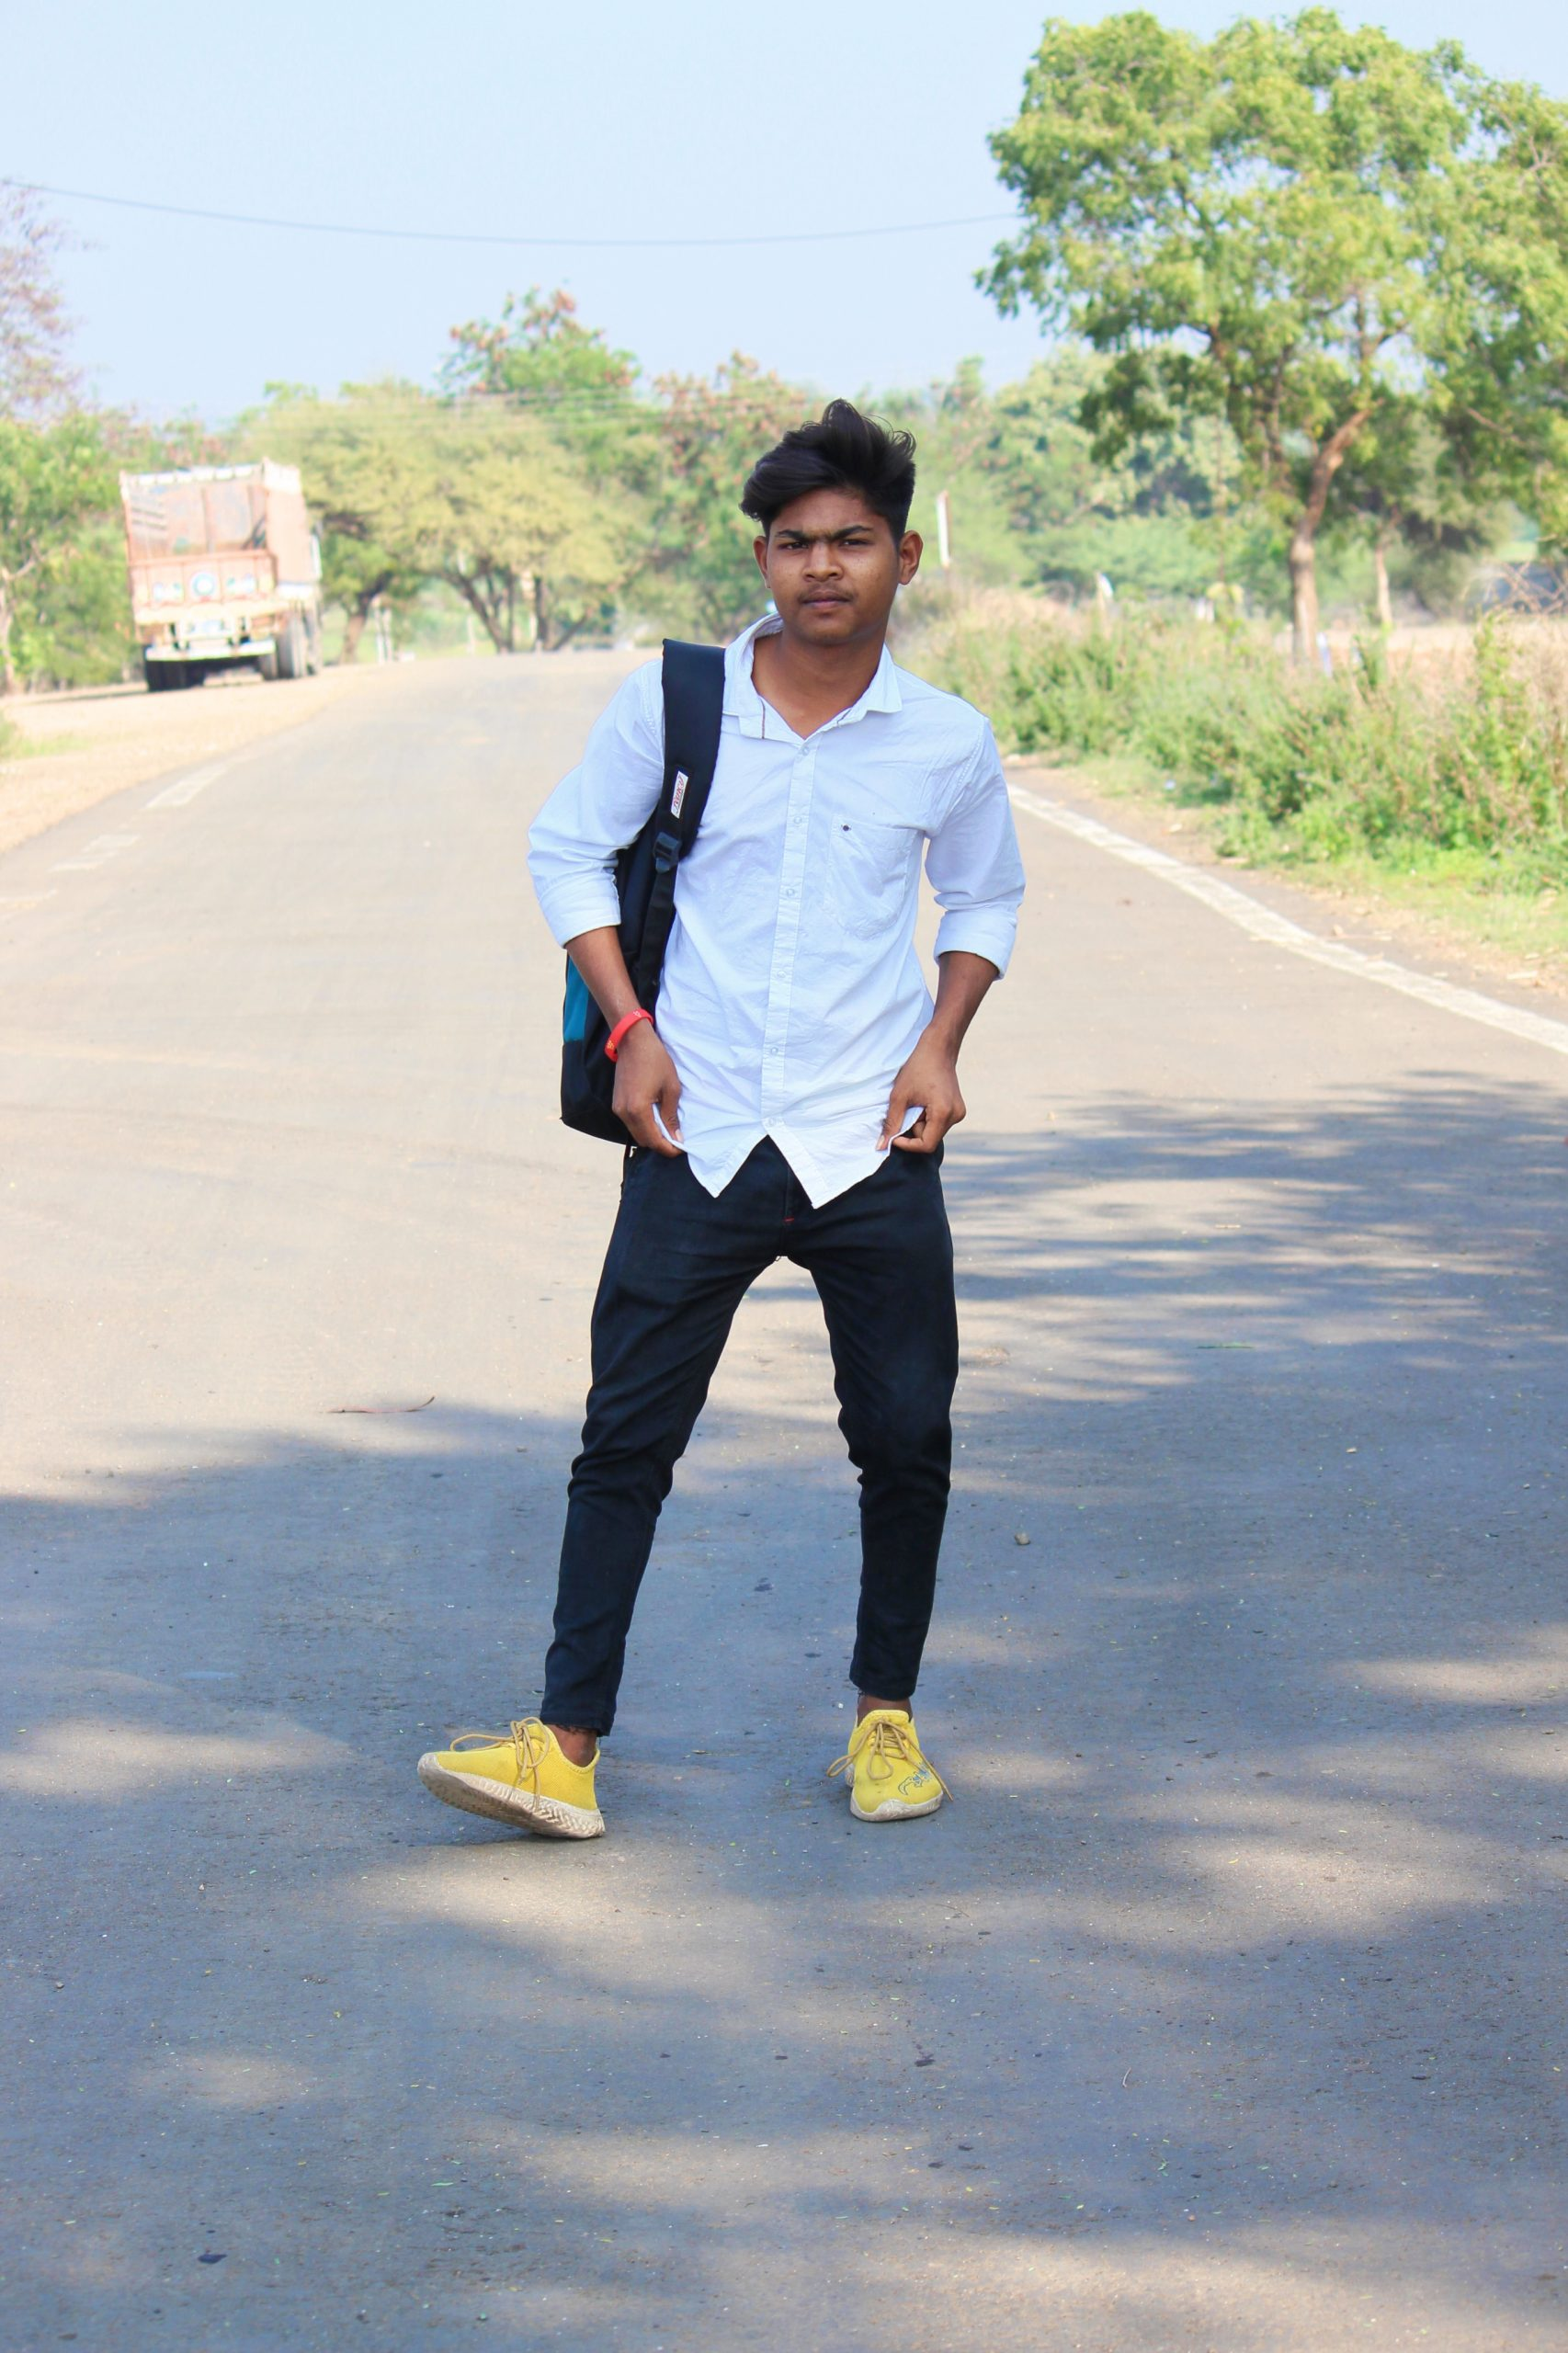 Young Indian boy posing on the road